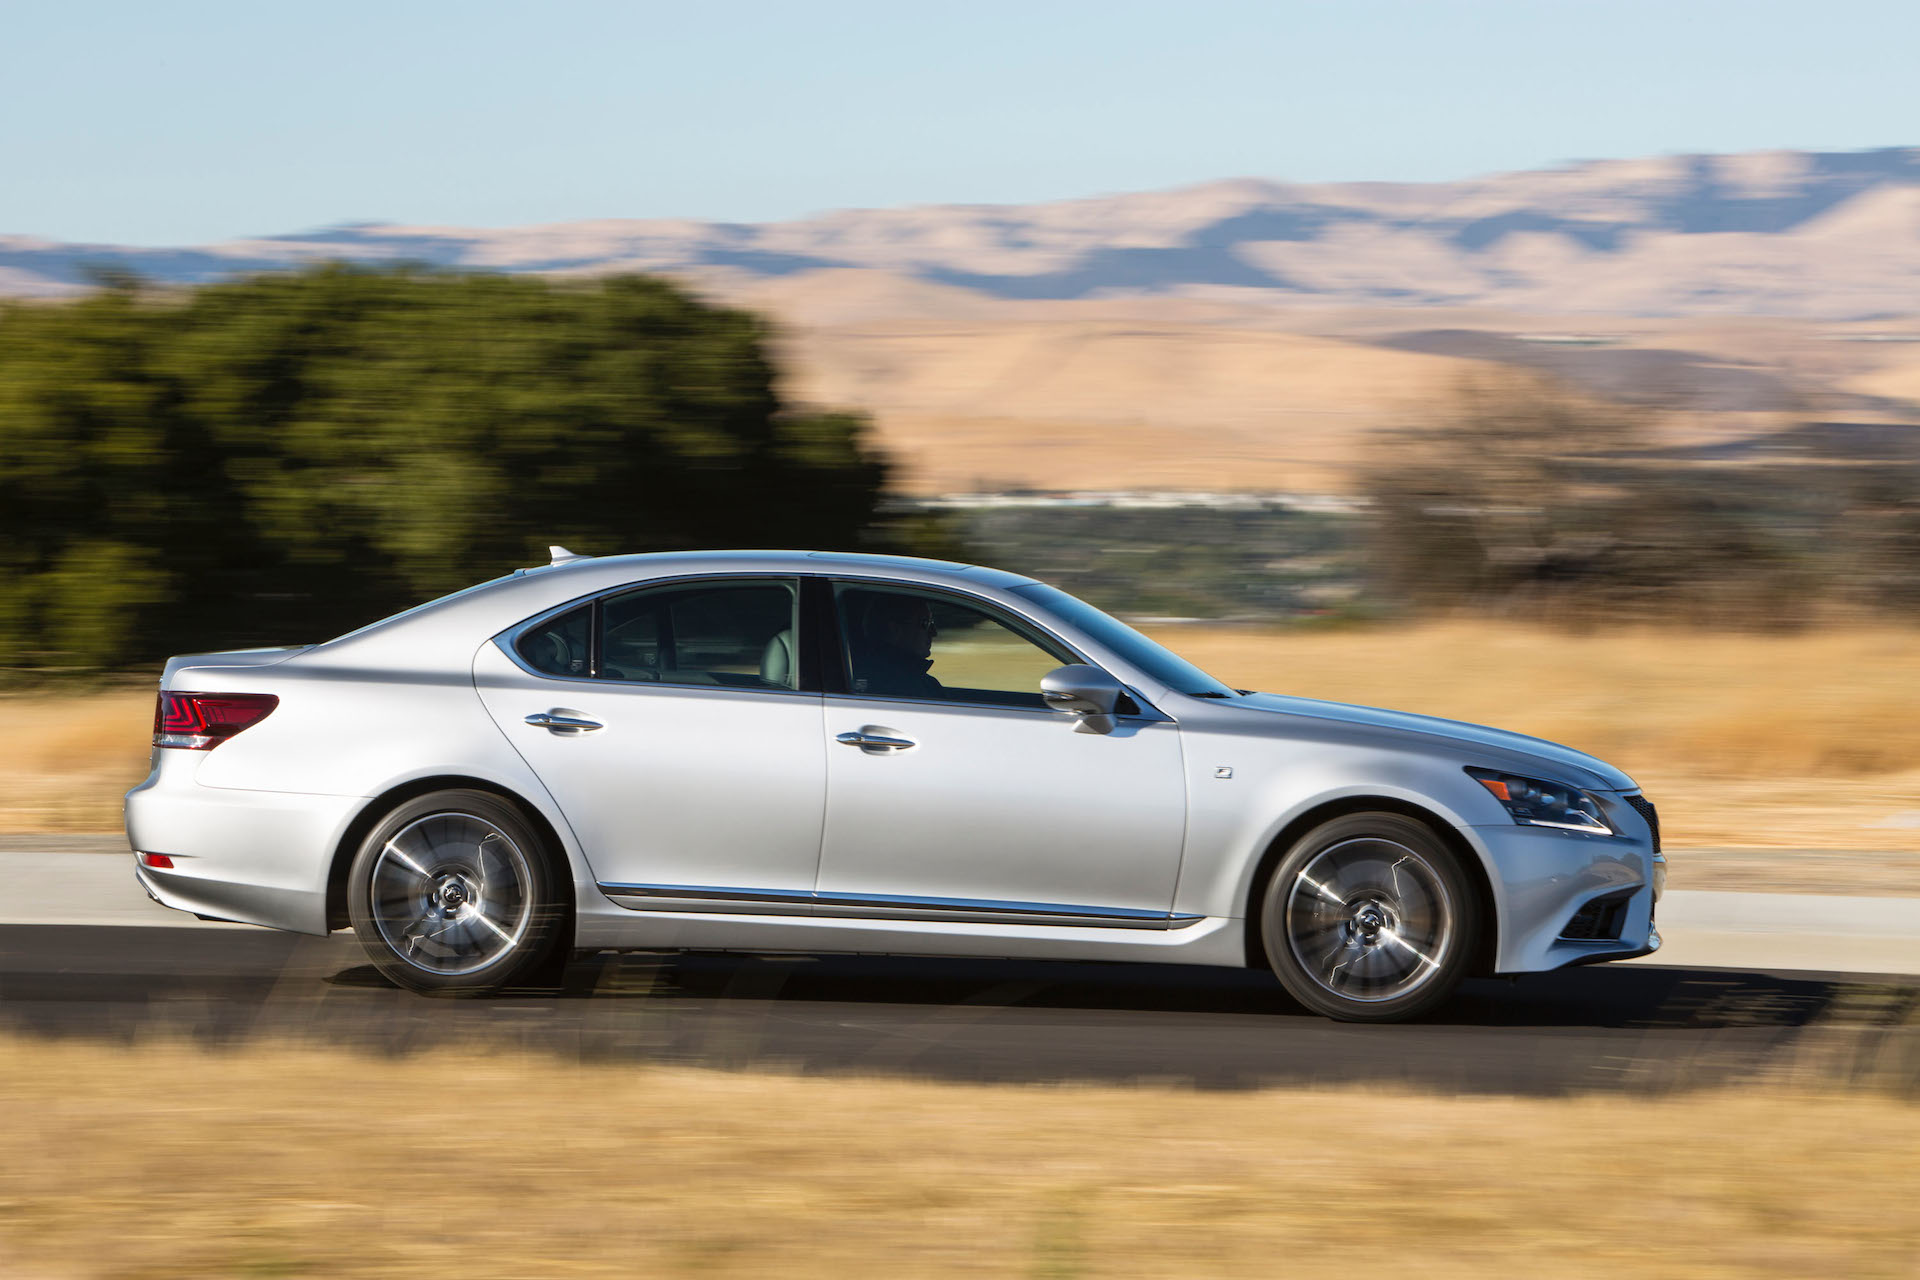 Next Generation LS Likely To Be Basis For First Lexus Fuel Cell Car